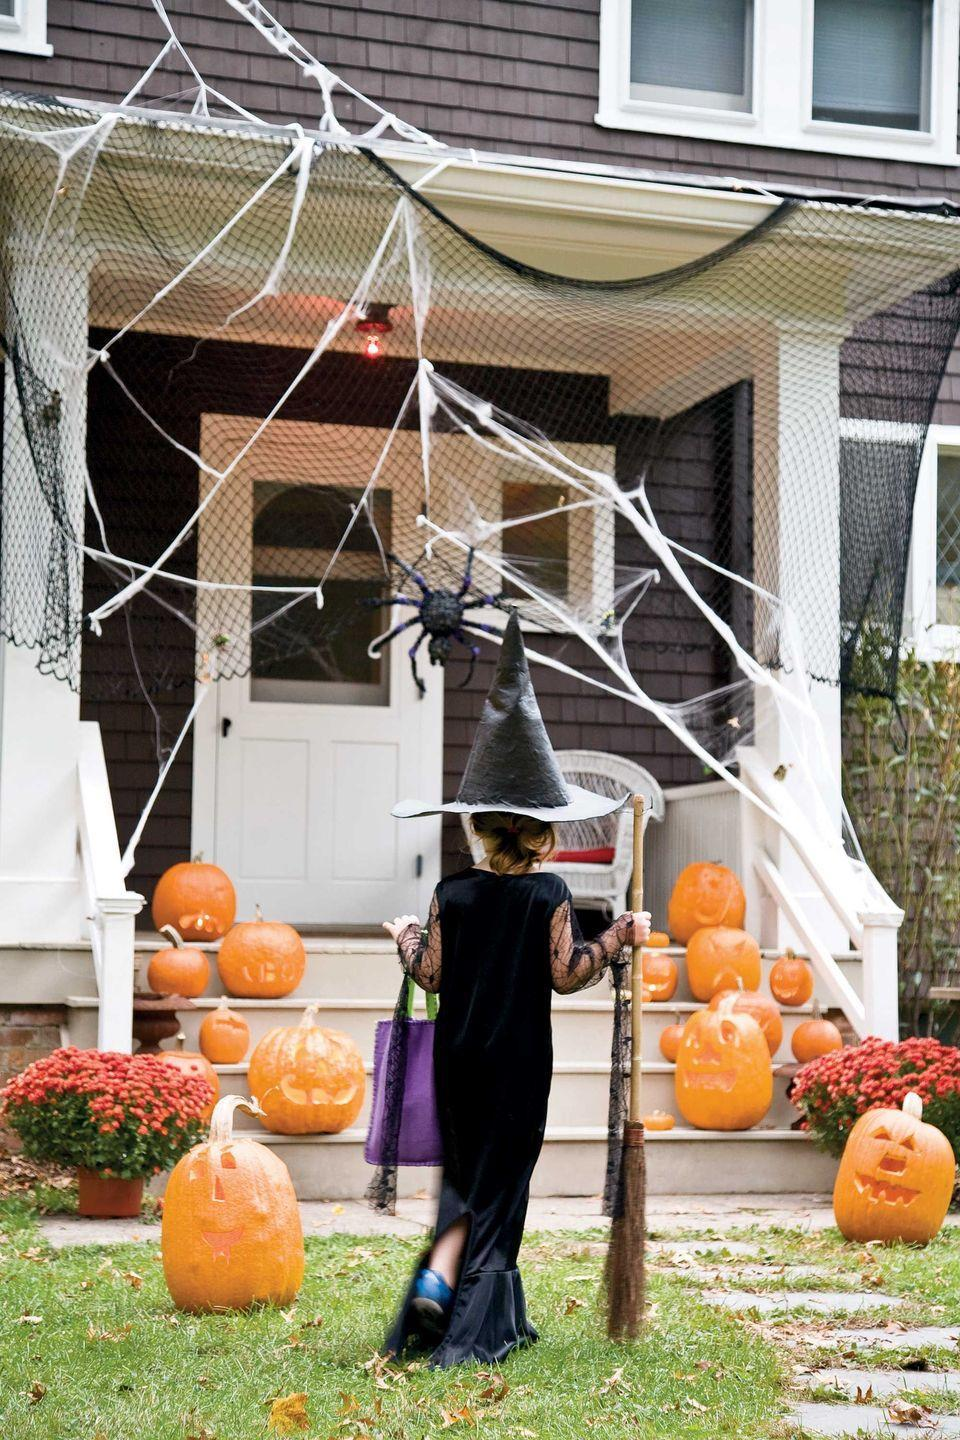 <p>Two rows of jovial jack-o-lanterns guide cautious guests toward the door. Soccer goal netting is draped halfway over the roof, offering a clever method to attach webs and giving one spider a fun way to greet newcomers.</p>